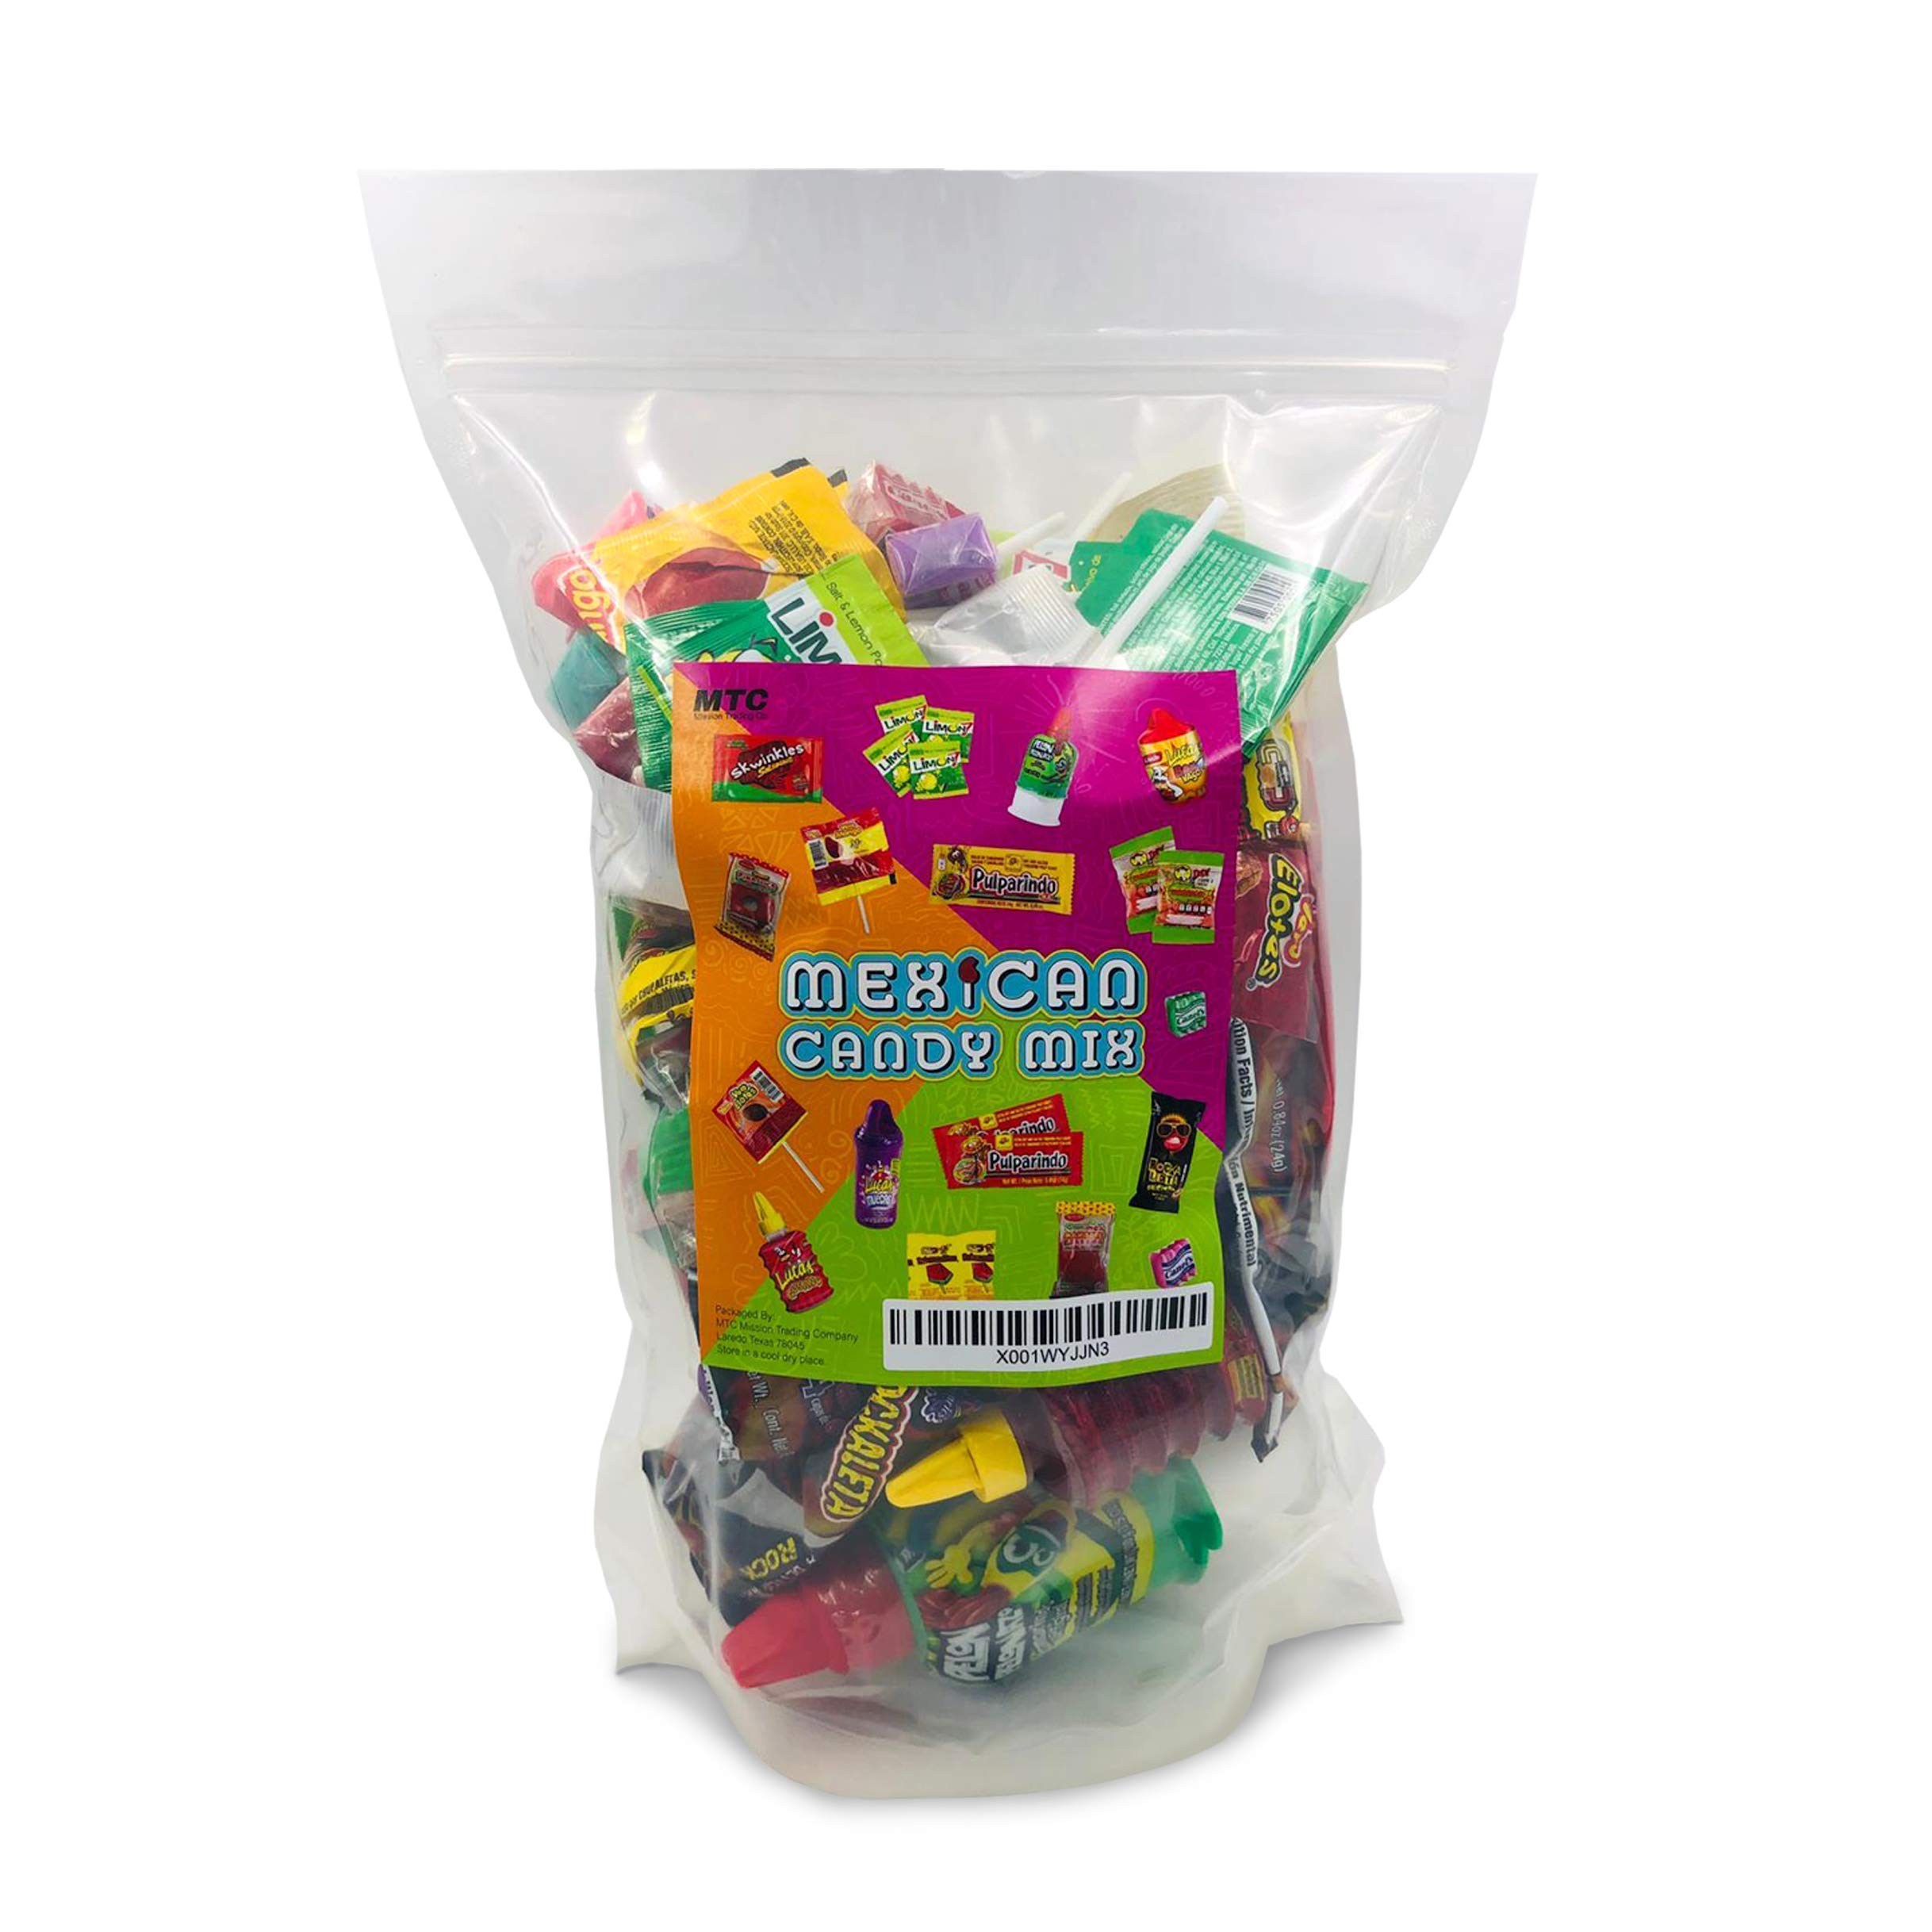 Mexican Candy Assortment Snacks (64 Count), Variety Of Spicy, Sweet, Sour Bulk Candies Dulces Mexicanos, Includes Lucas Candy, Pelon, Vero Lollipop, Pulparindo Makes A Great Gift By MTC. by MTC (Image #3)